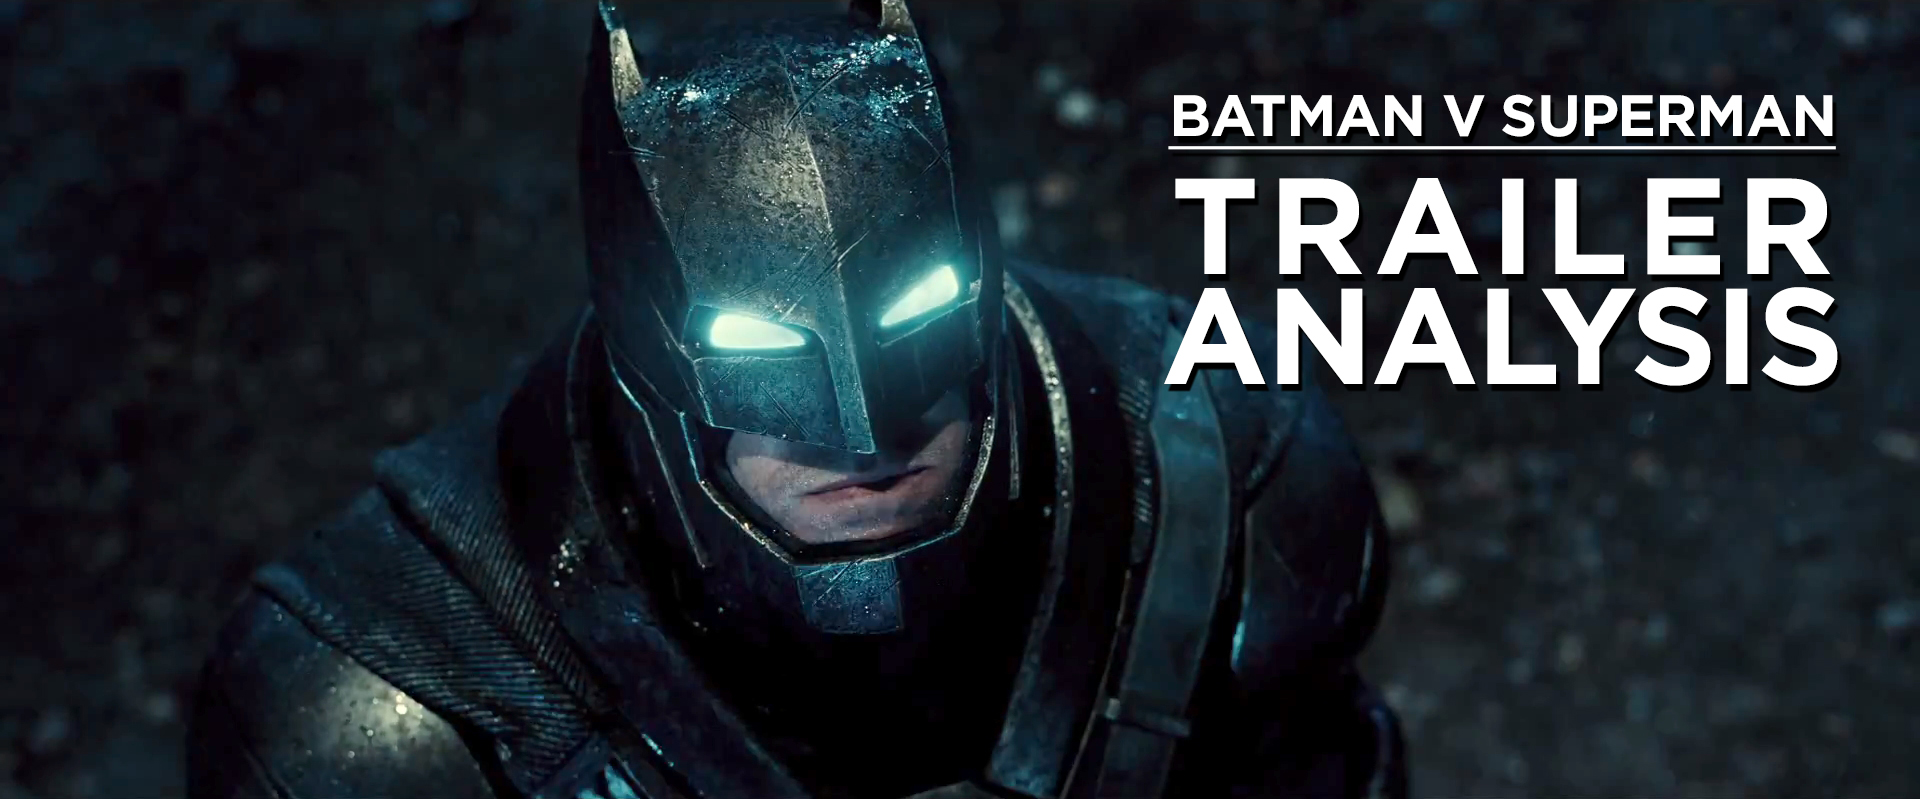 batman v superman trailer analysis